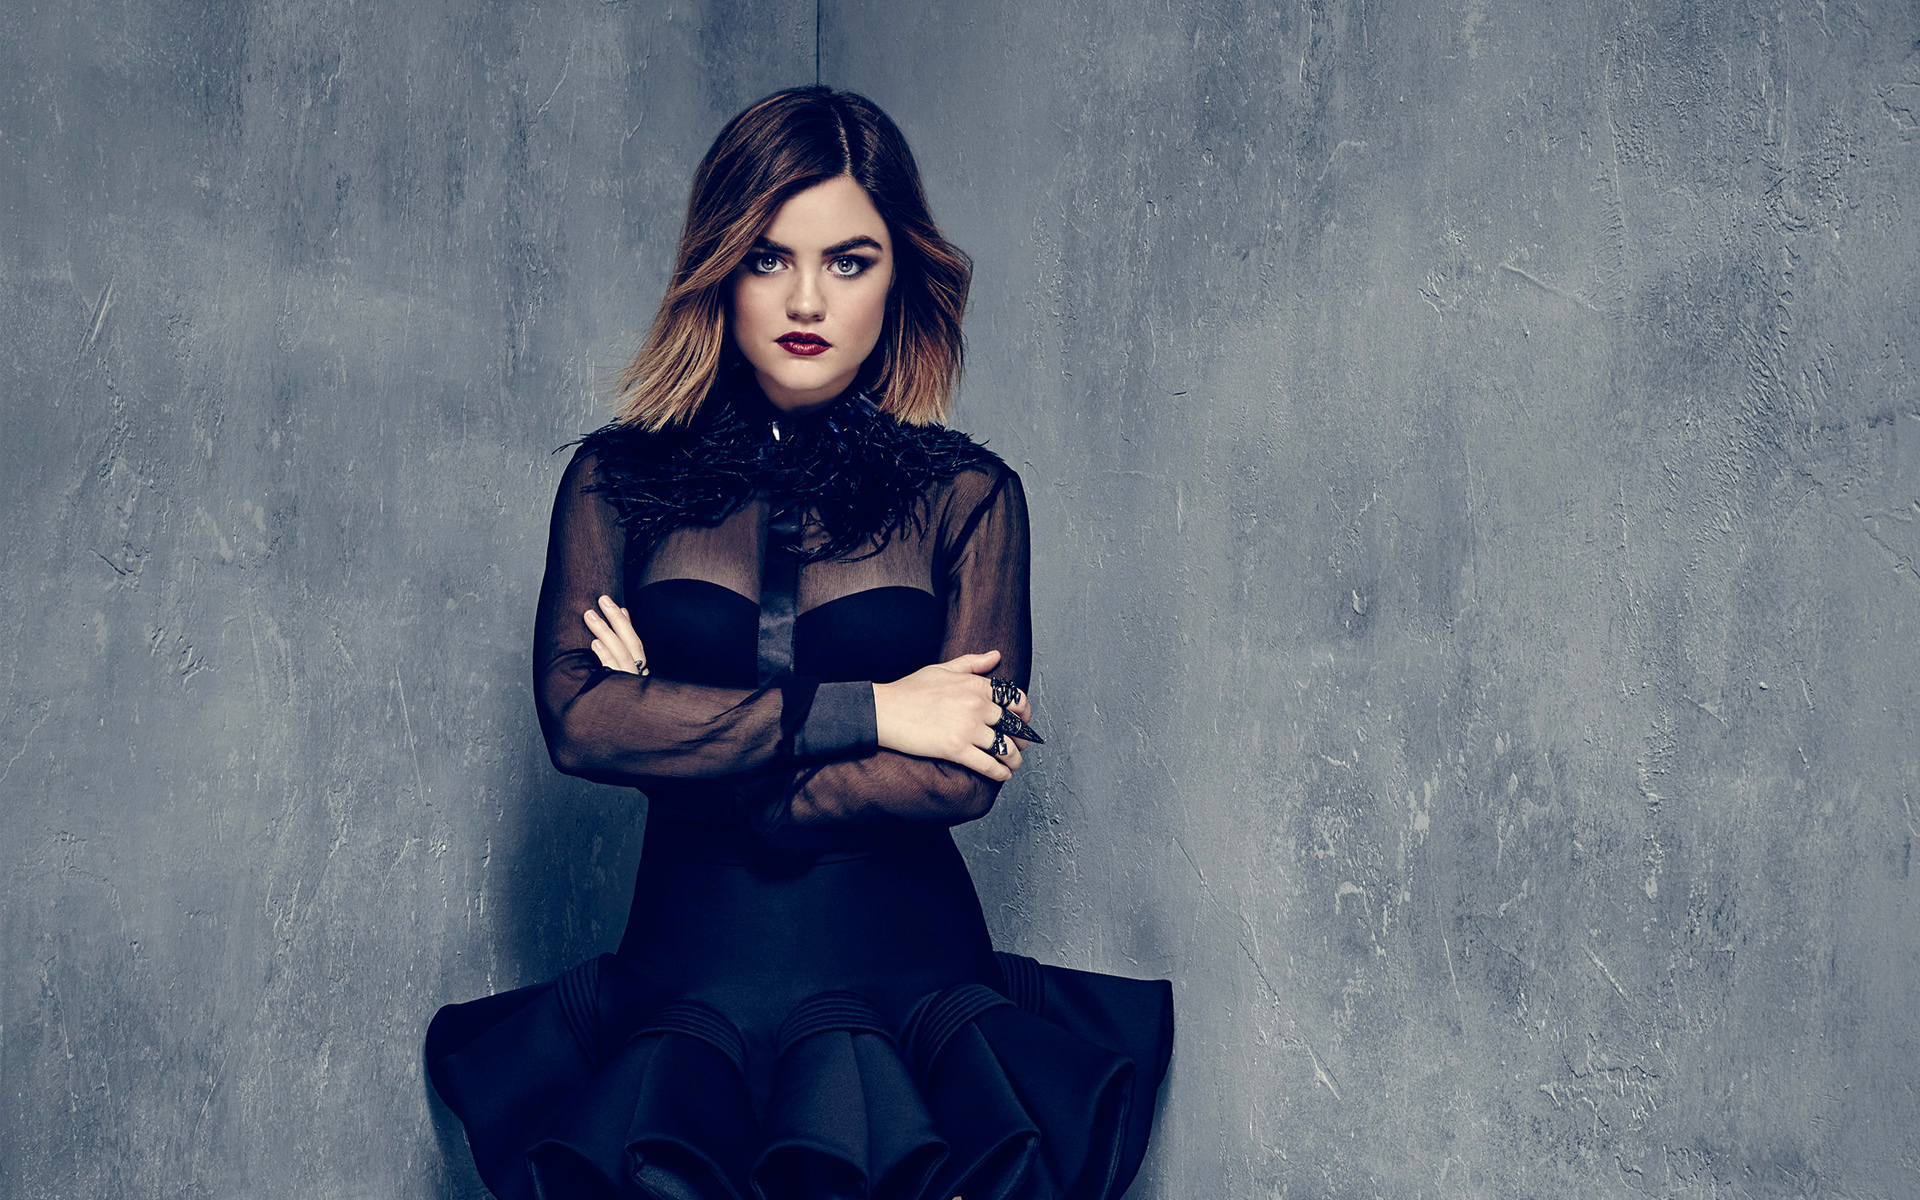 1920x1200 - Lucy Hale Wallpapers 9